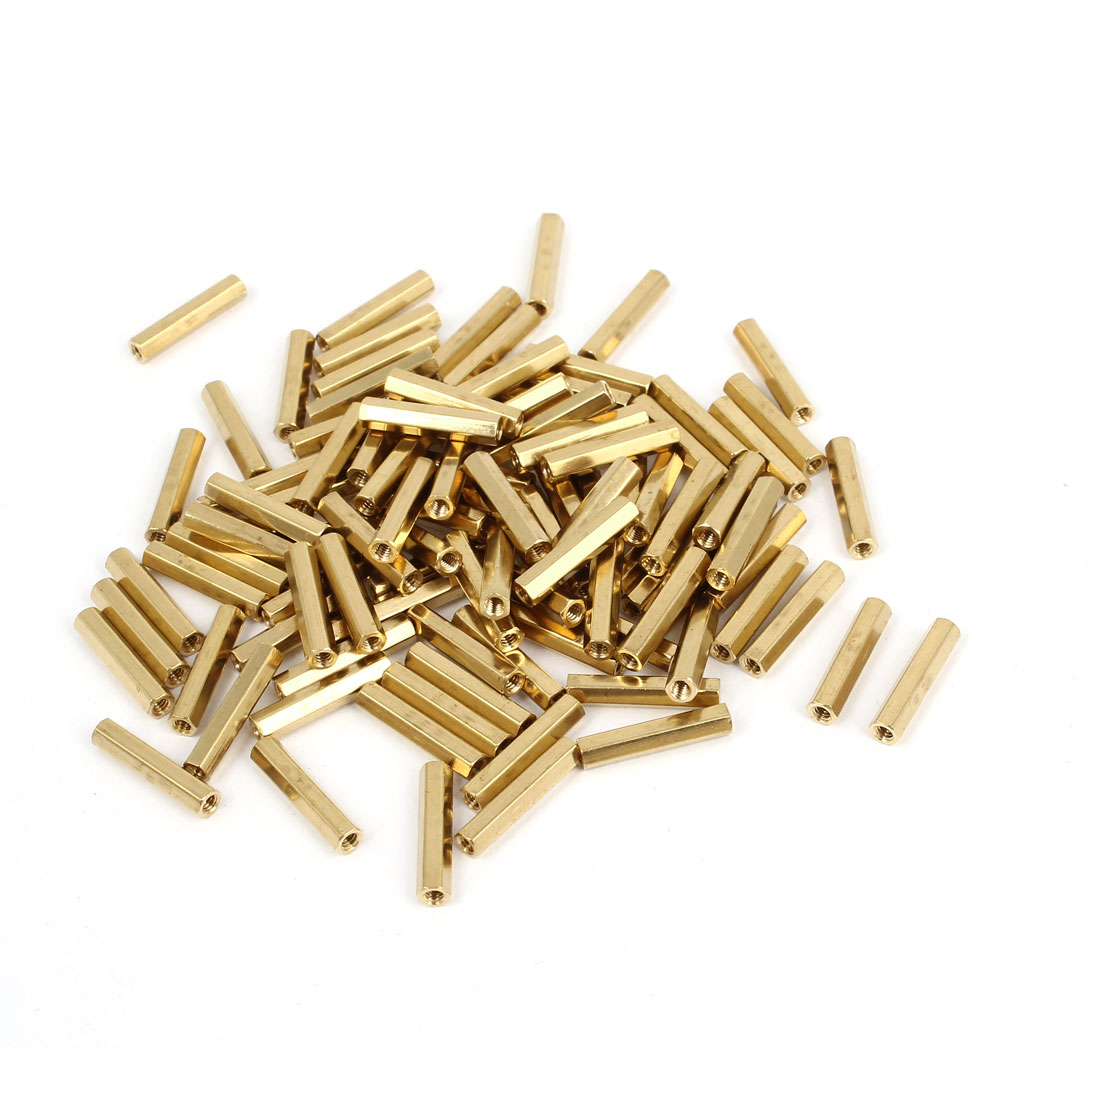 100 Pcs M2 Female Thread Brass Pillar Standoff Hexagonal Spacer 15mm Length